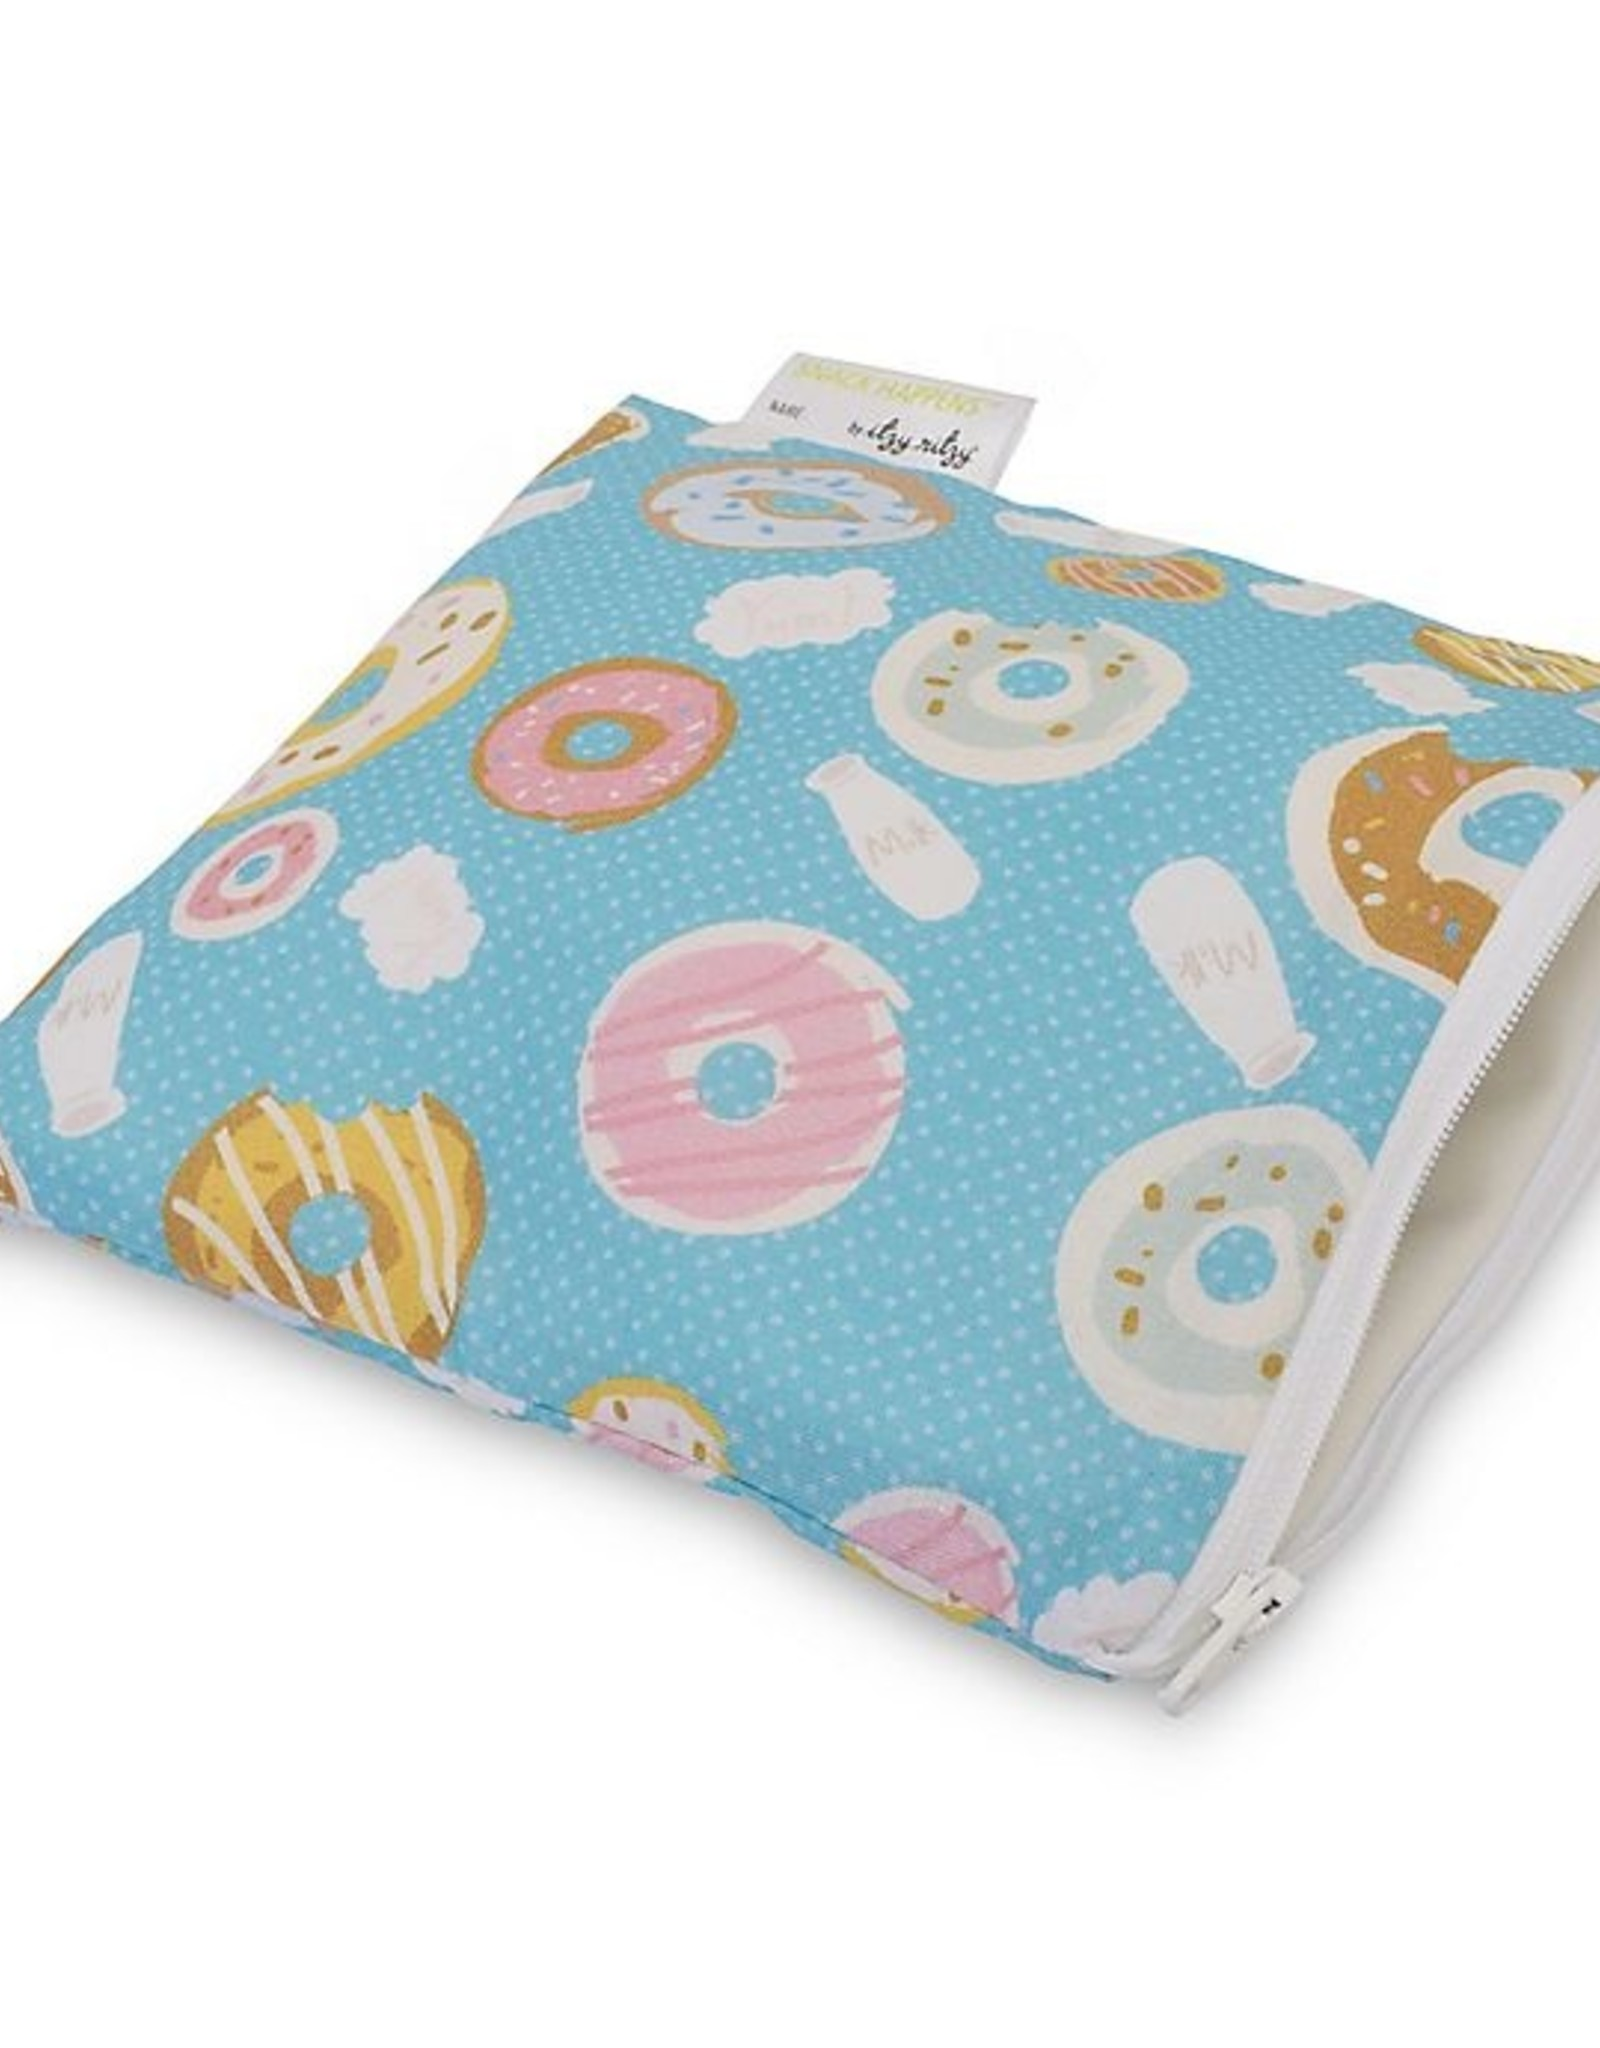 Itzy Ritzy Snack & Everything Bag - Donut Shop